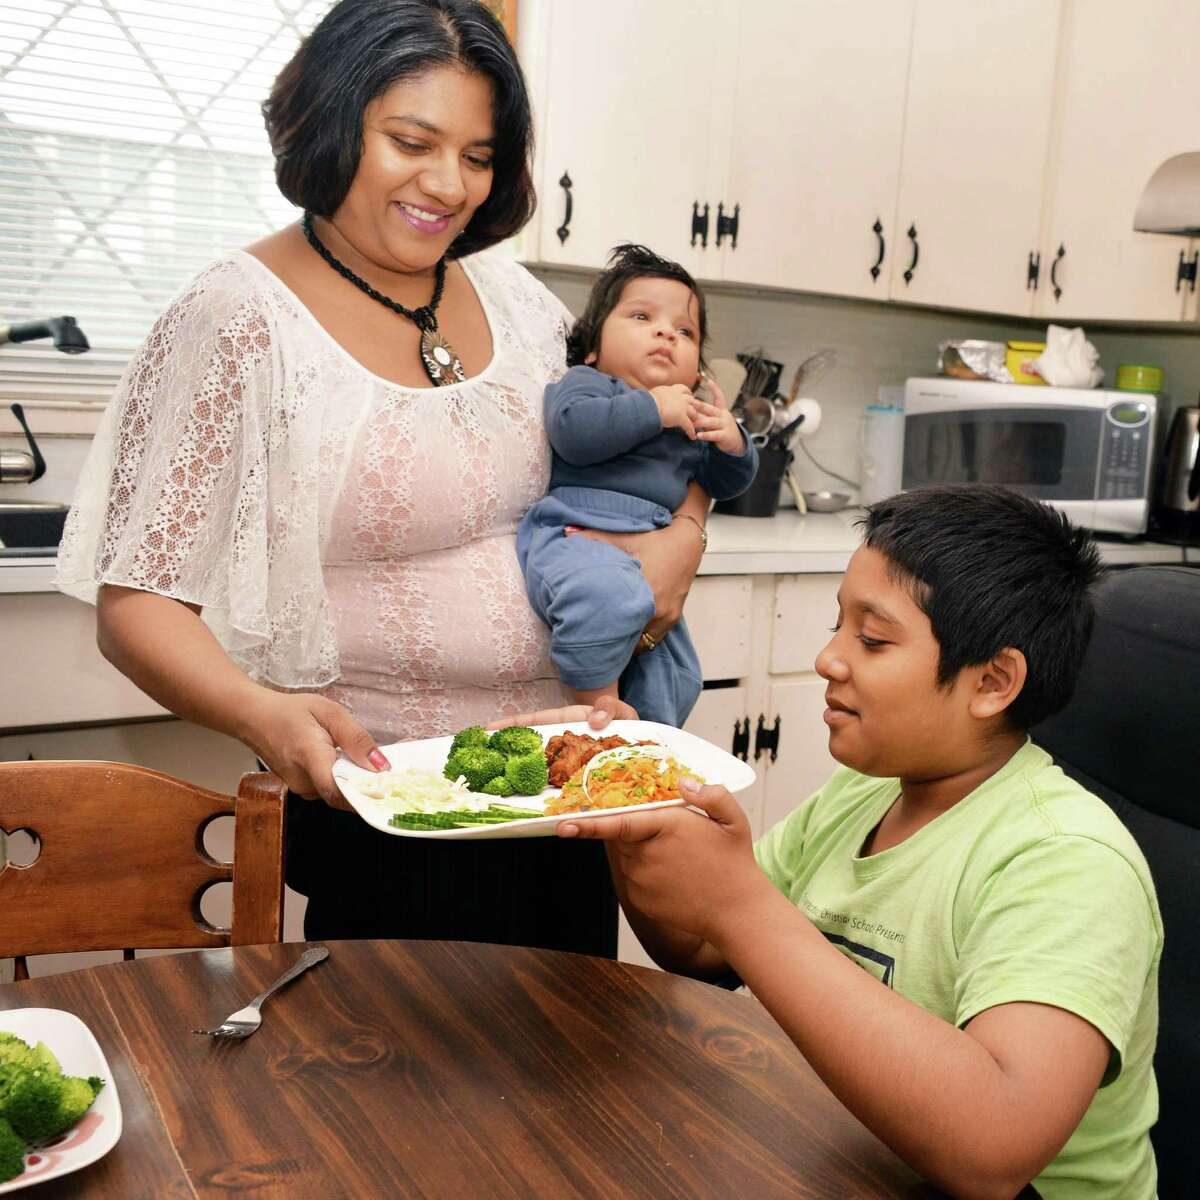 Veronica Baijnauth Gomes with sons, 3-month-old Baruch and Nathaniel, 11, in the kitchen of her Schenectady home Friday May 17, 2013. (John Carl D'Annibale / Times Union)